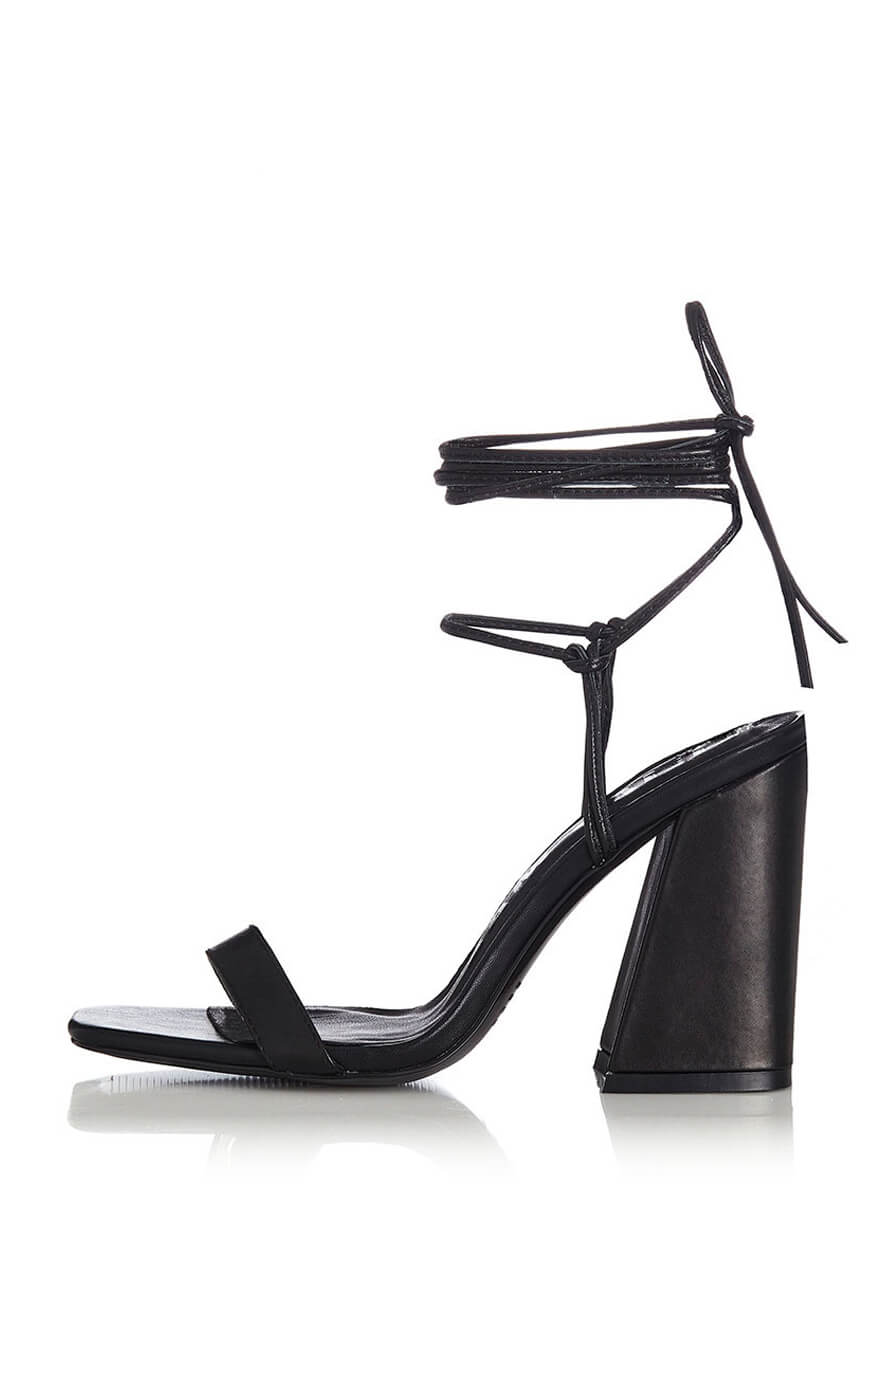 THE WILLA HEEL - BLACK